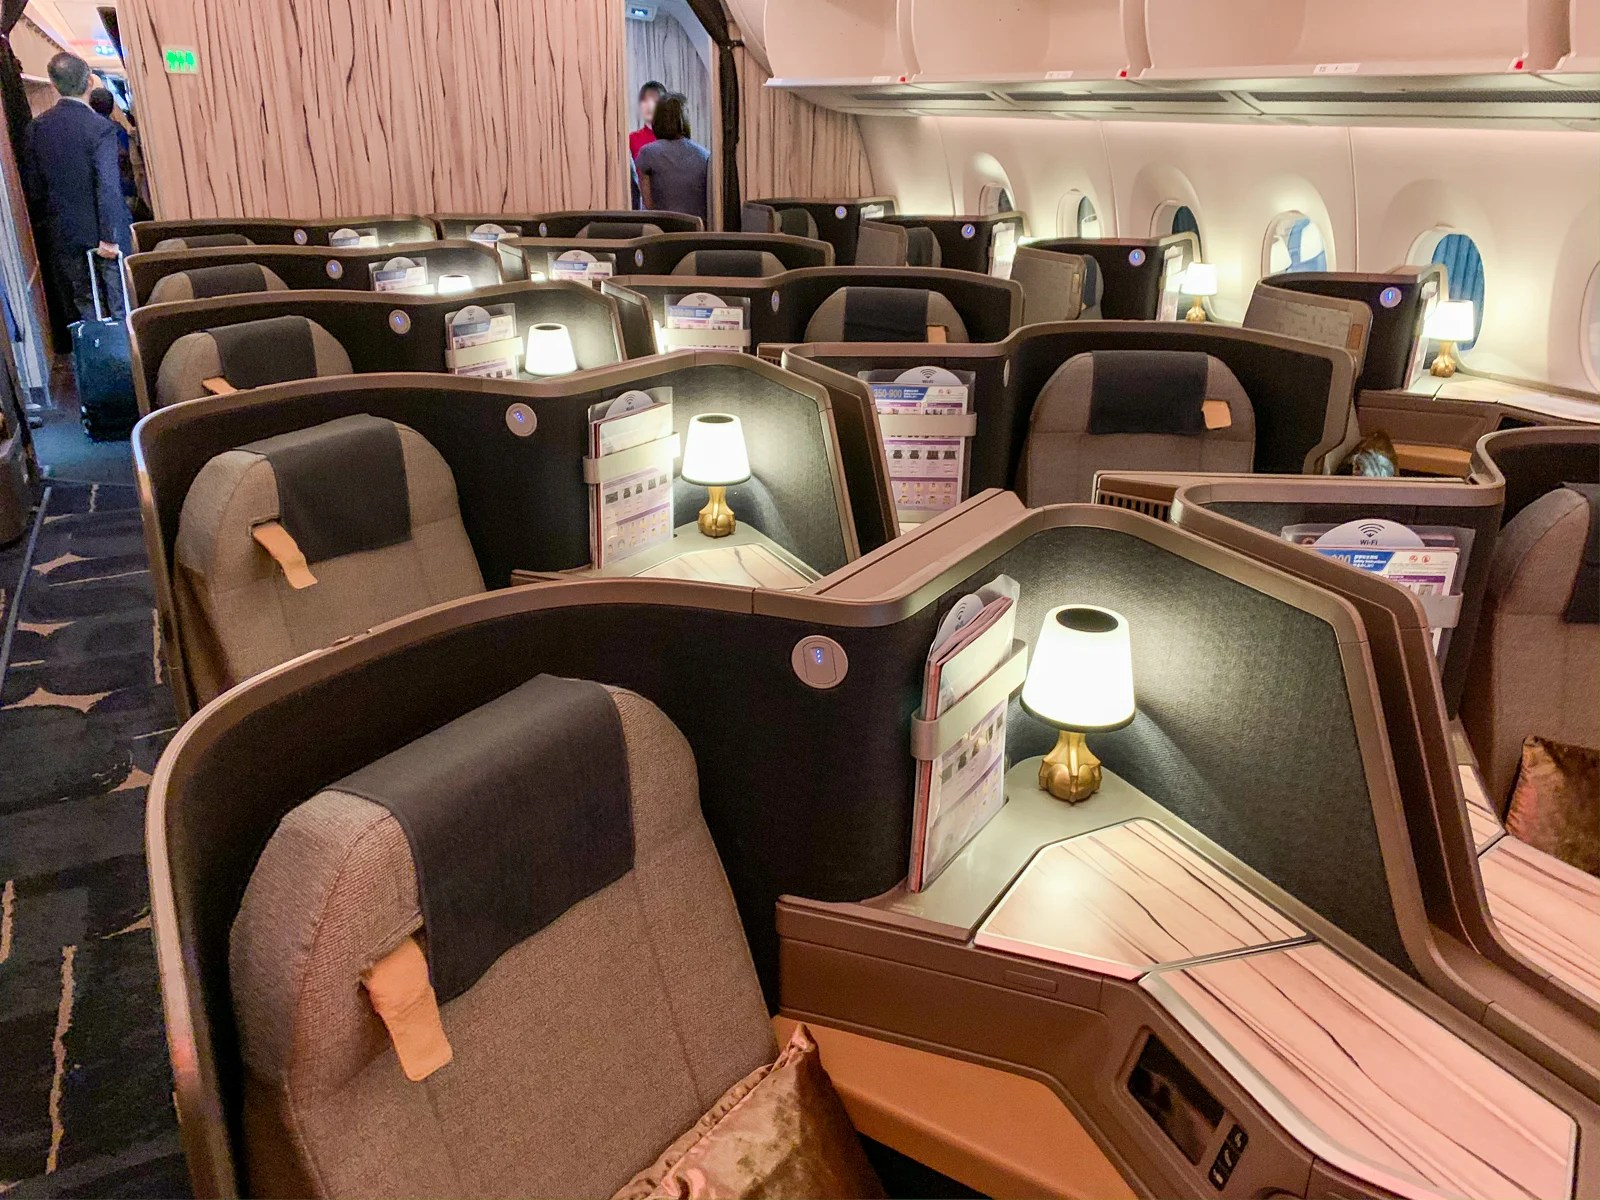 Golden elegance: A review of China Airlines business class on the Airbus A350